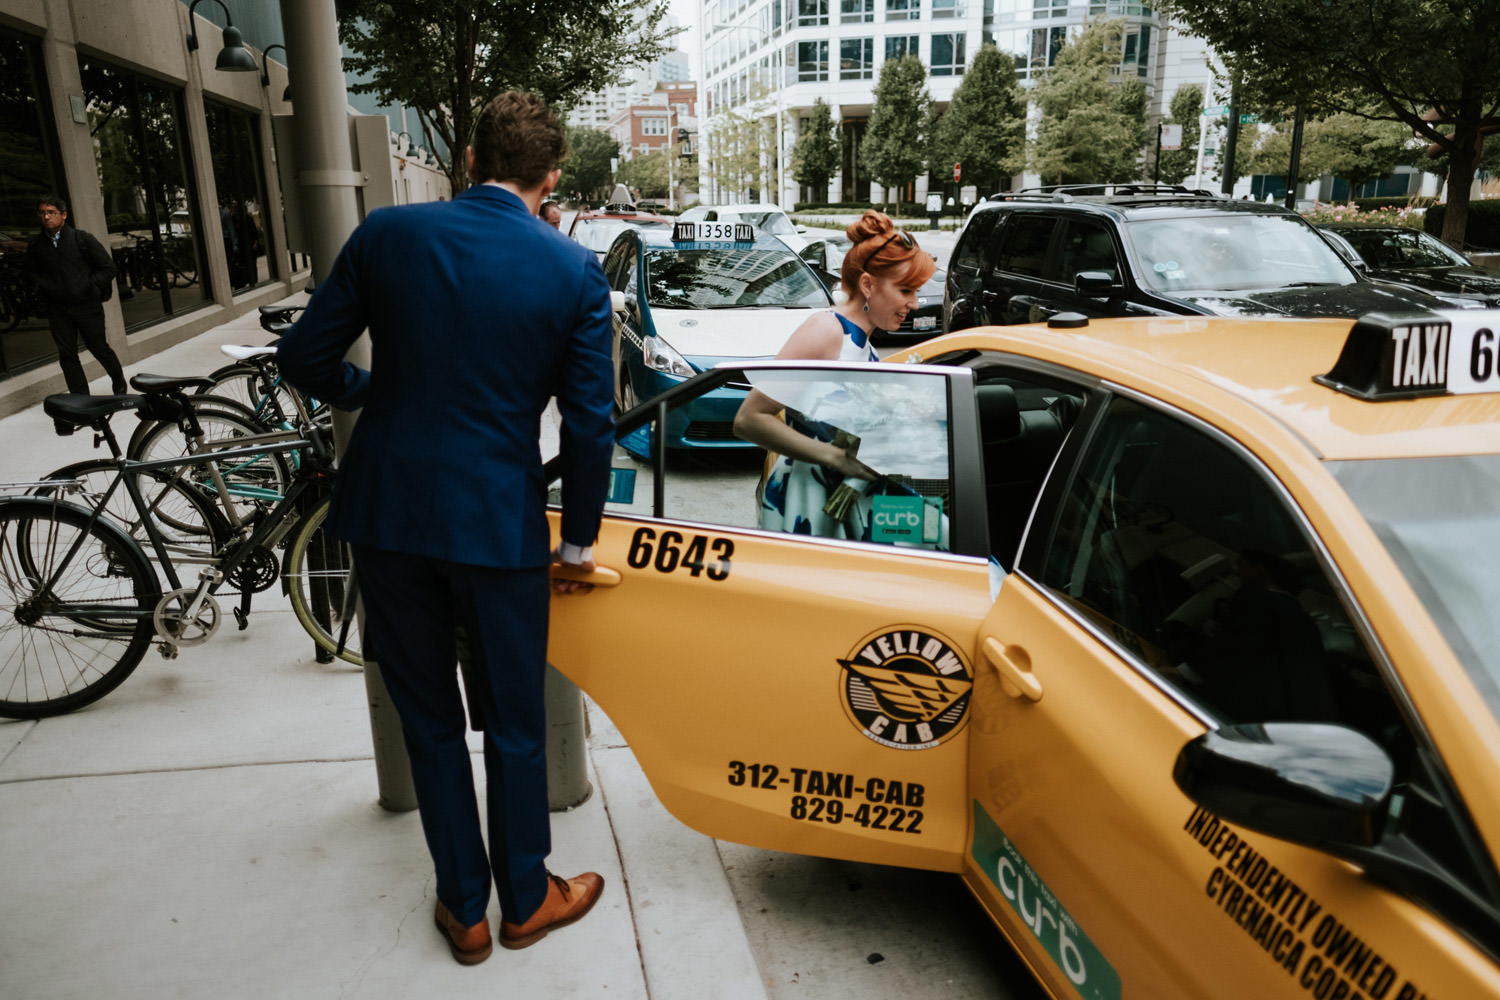 bride and groom take a cab during the elopement day in Chicago